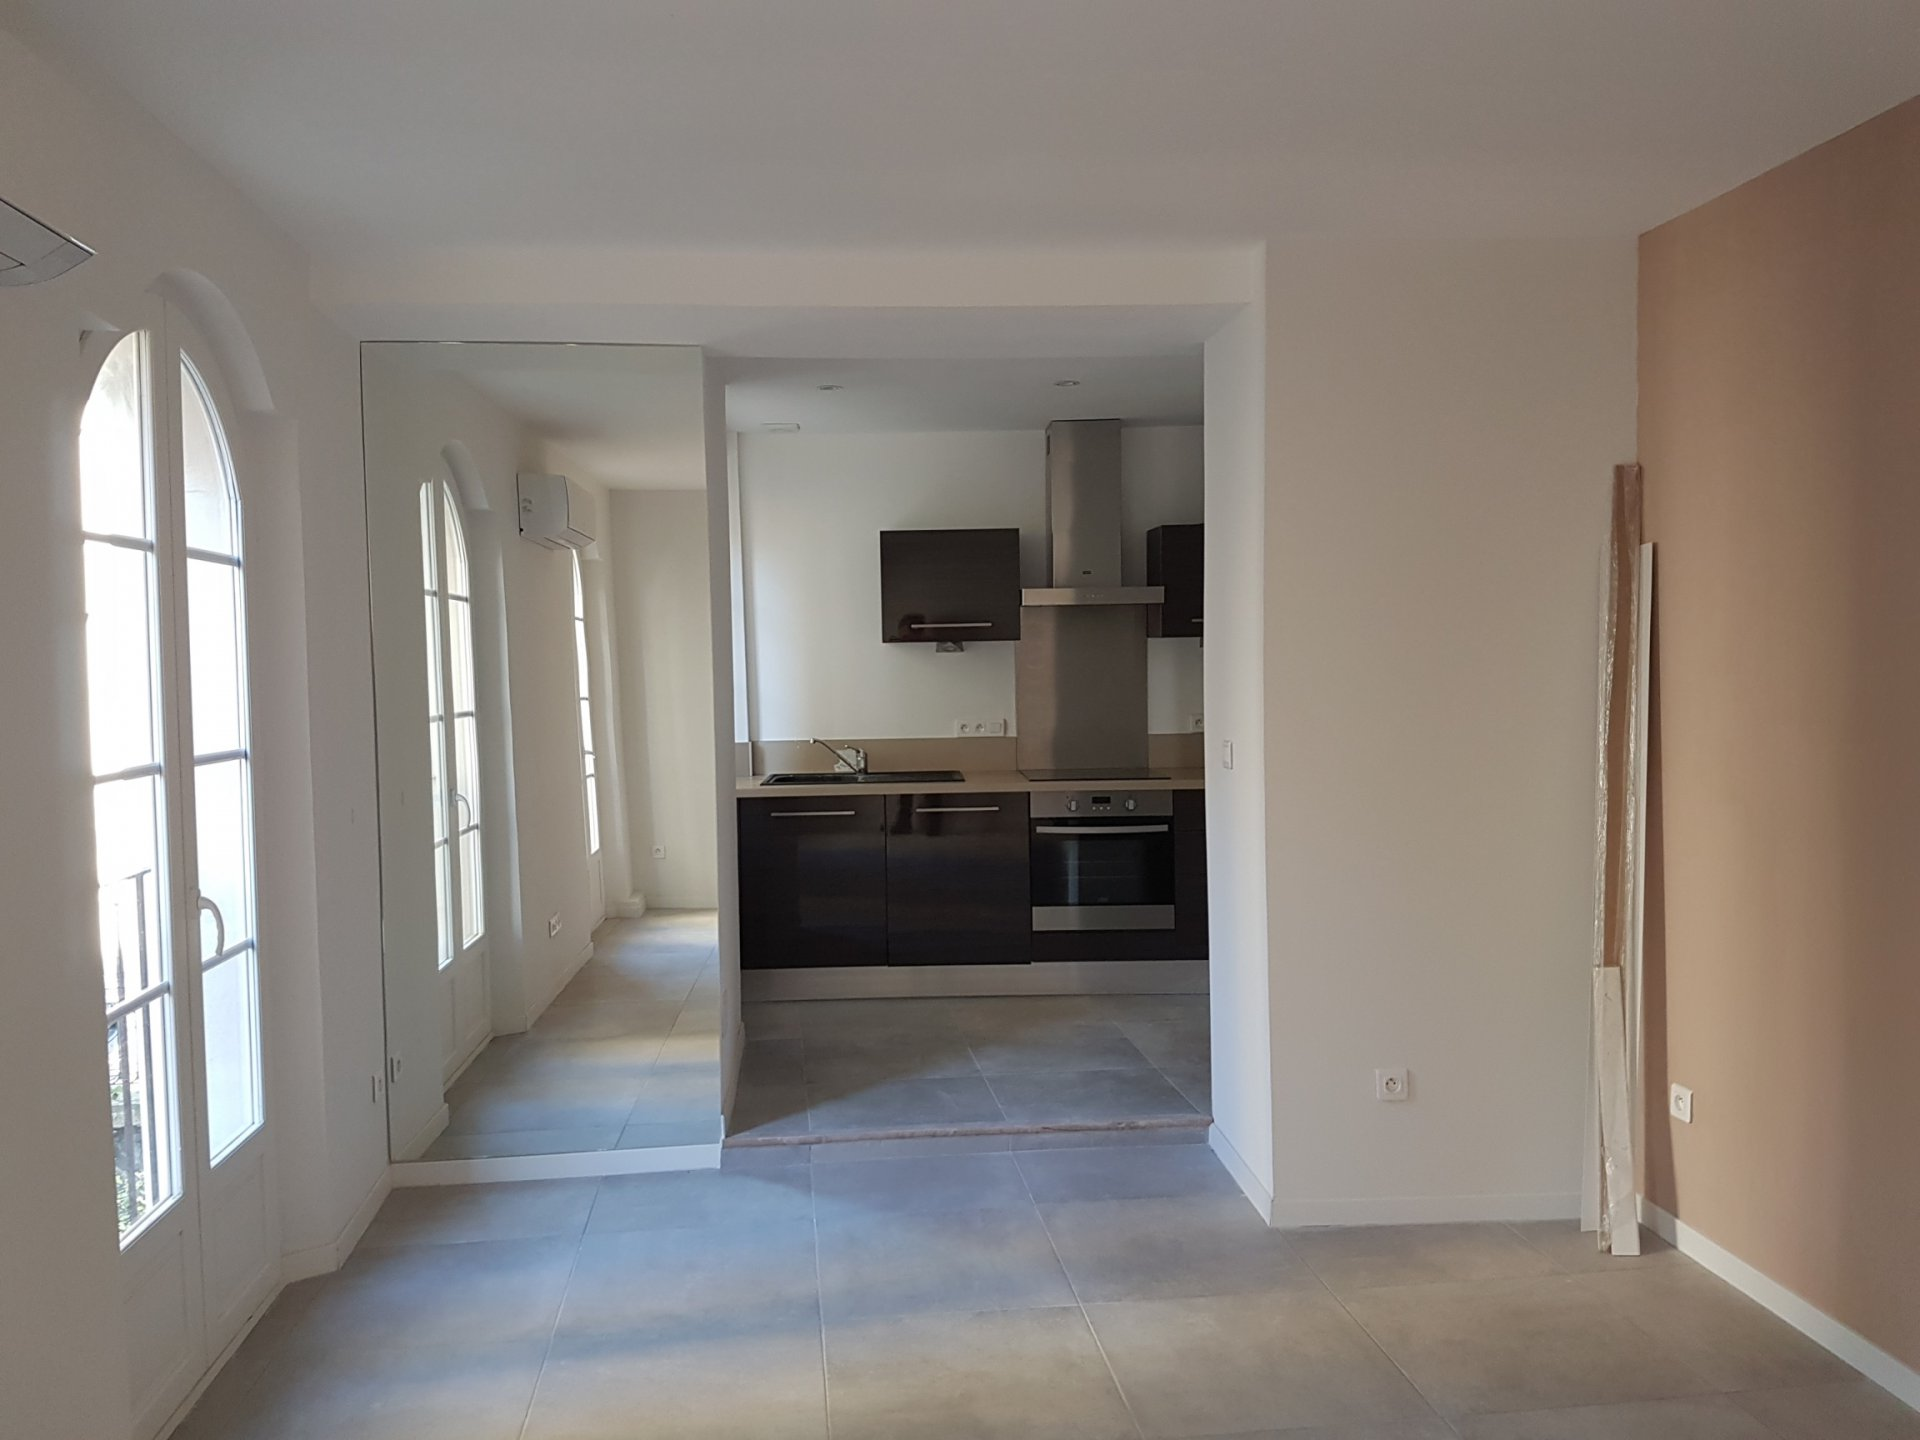 New apartment 40 sqm in the center of Isle sur Sorgue